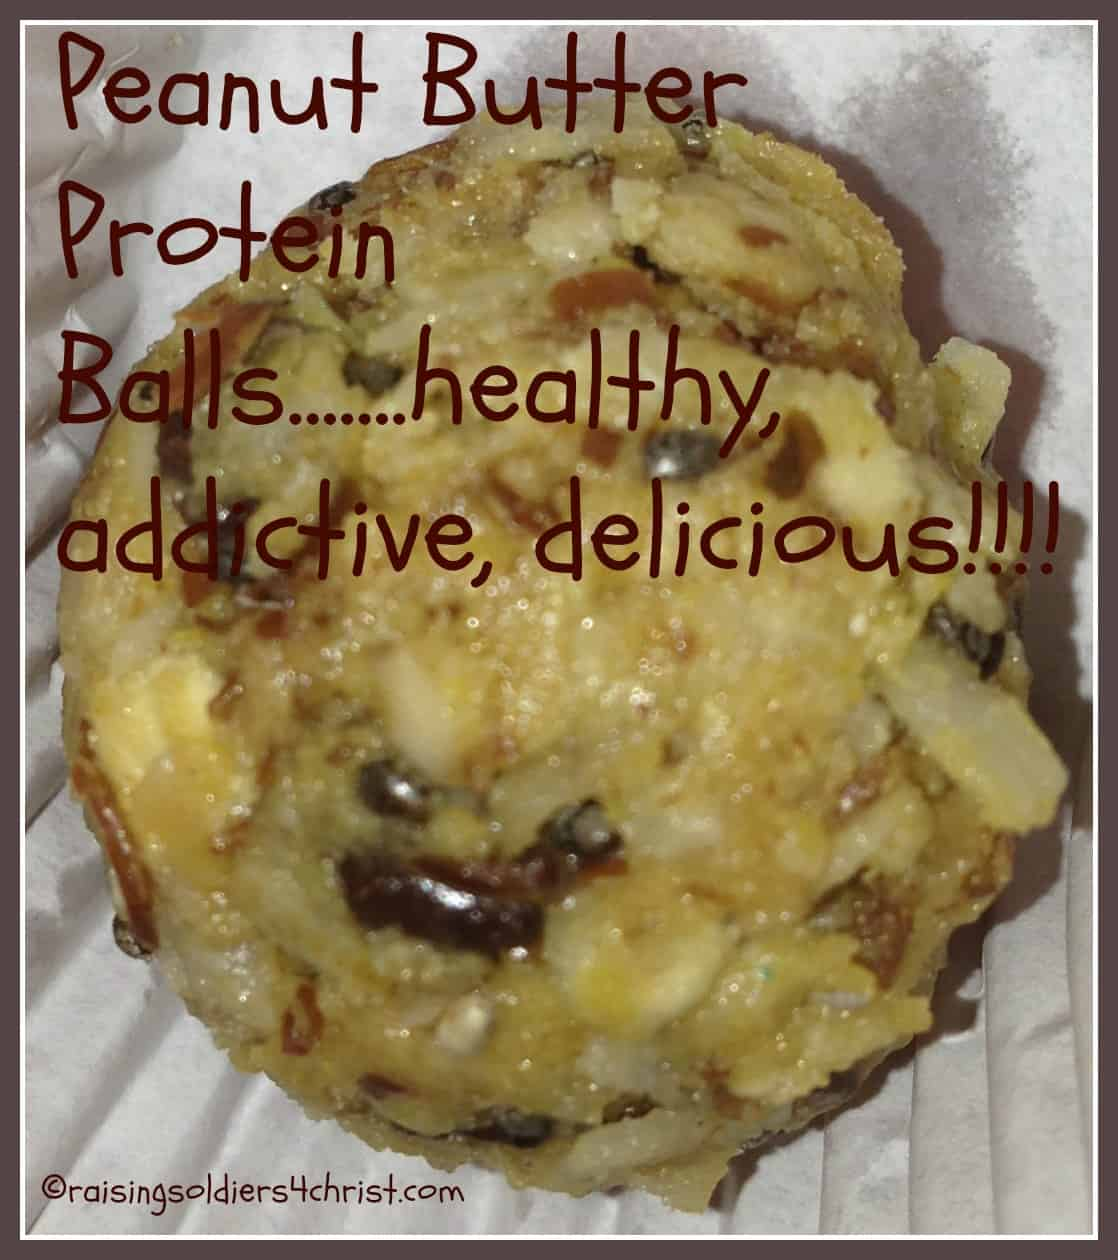 Tasty Tuesday: Peanut Butter Protein Balls